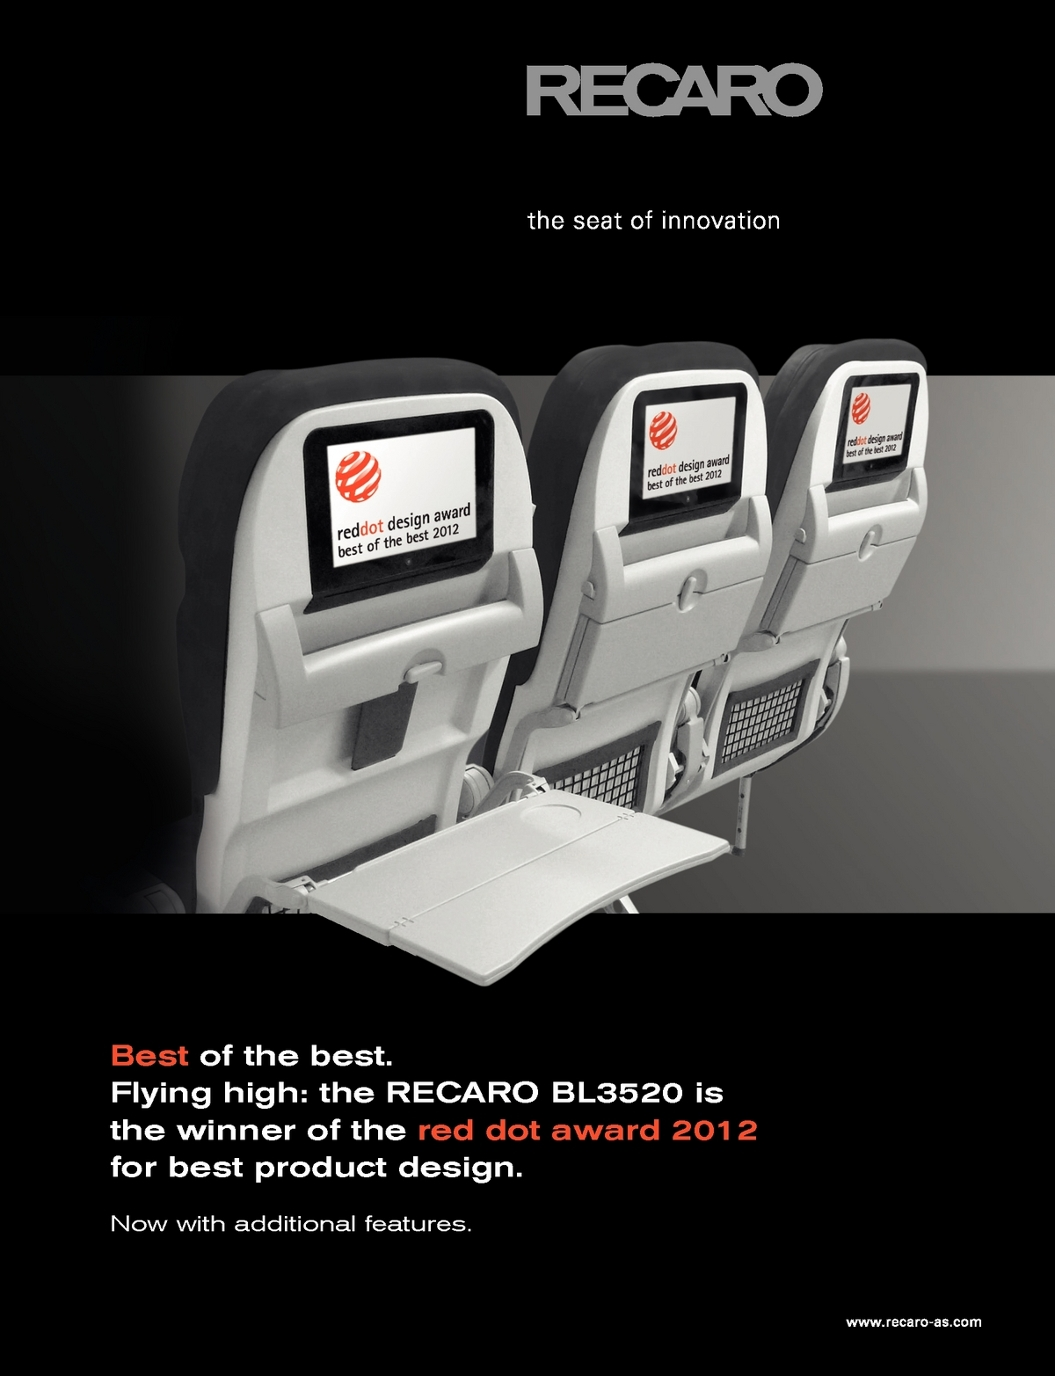 Aircraft Interiors International - June 2012